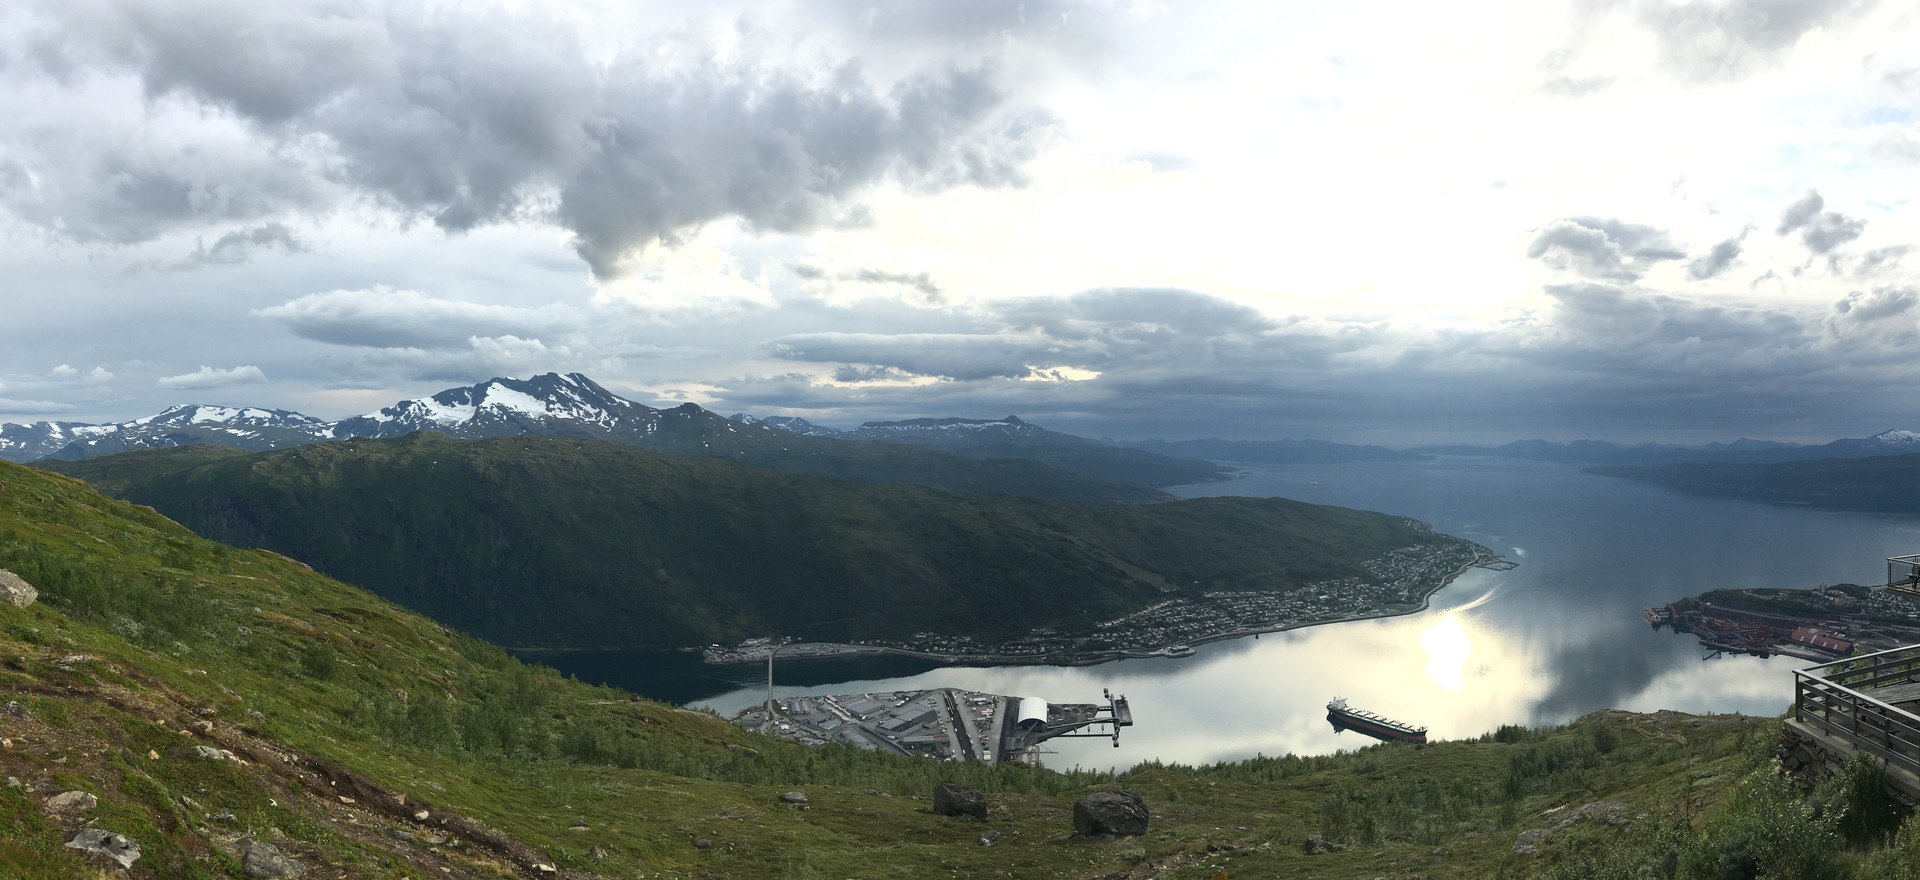 View of the Fjord of Narvik, Norway